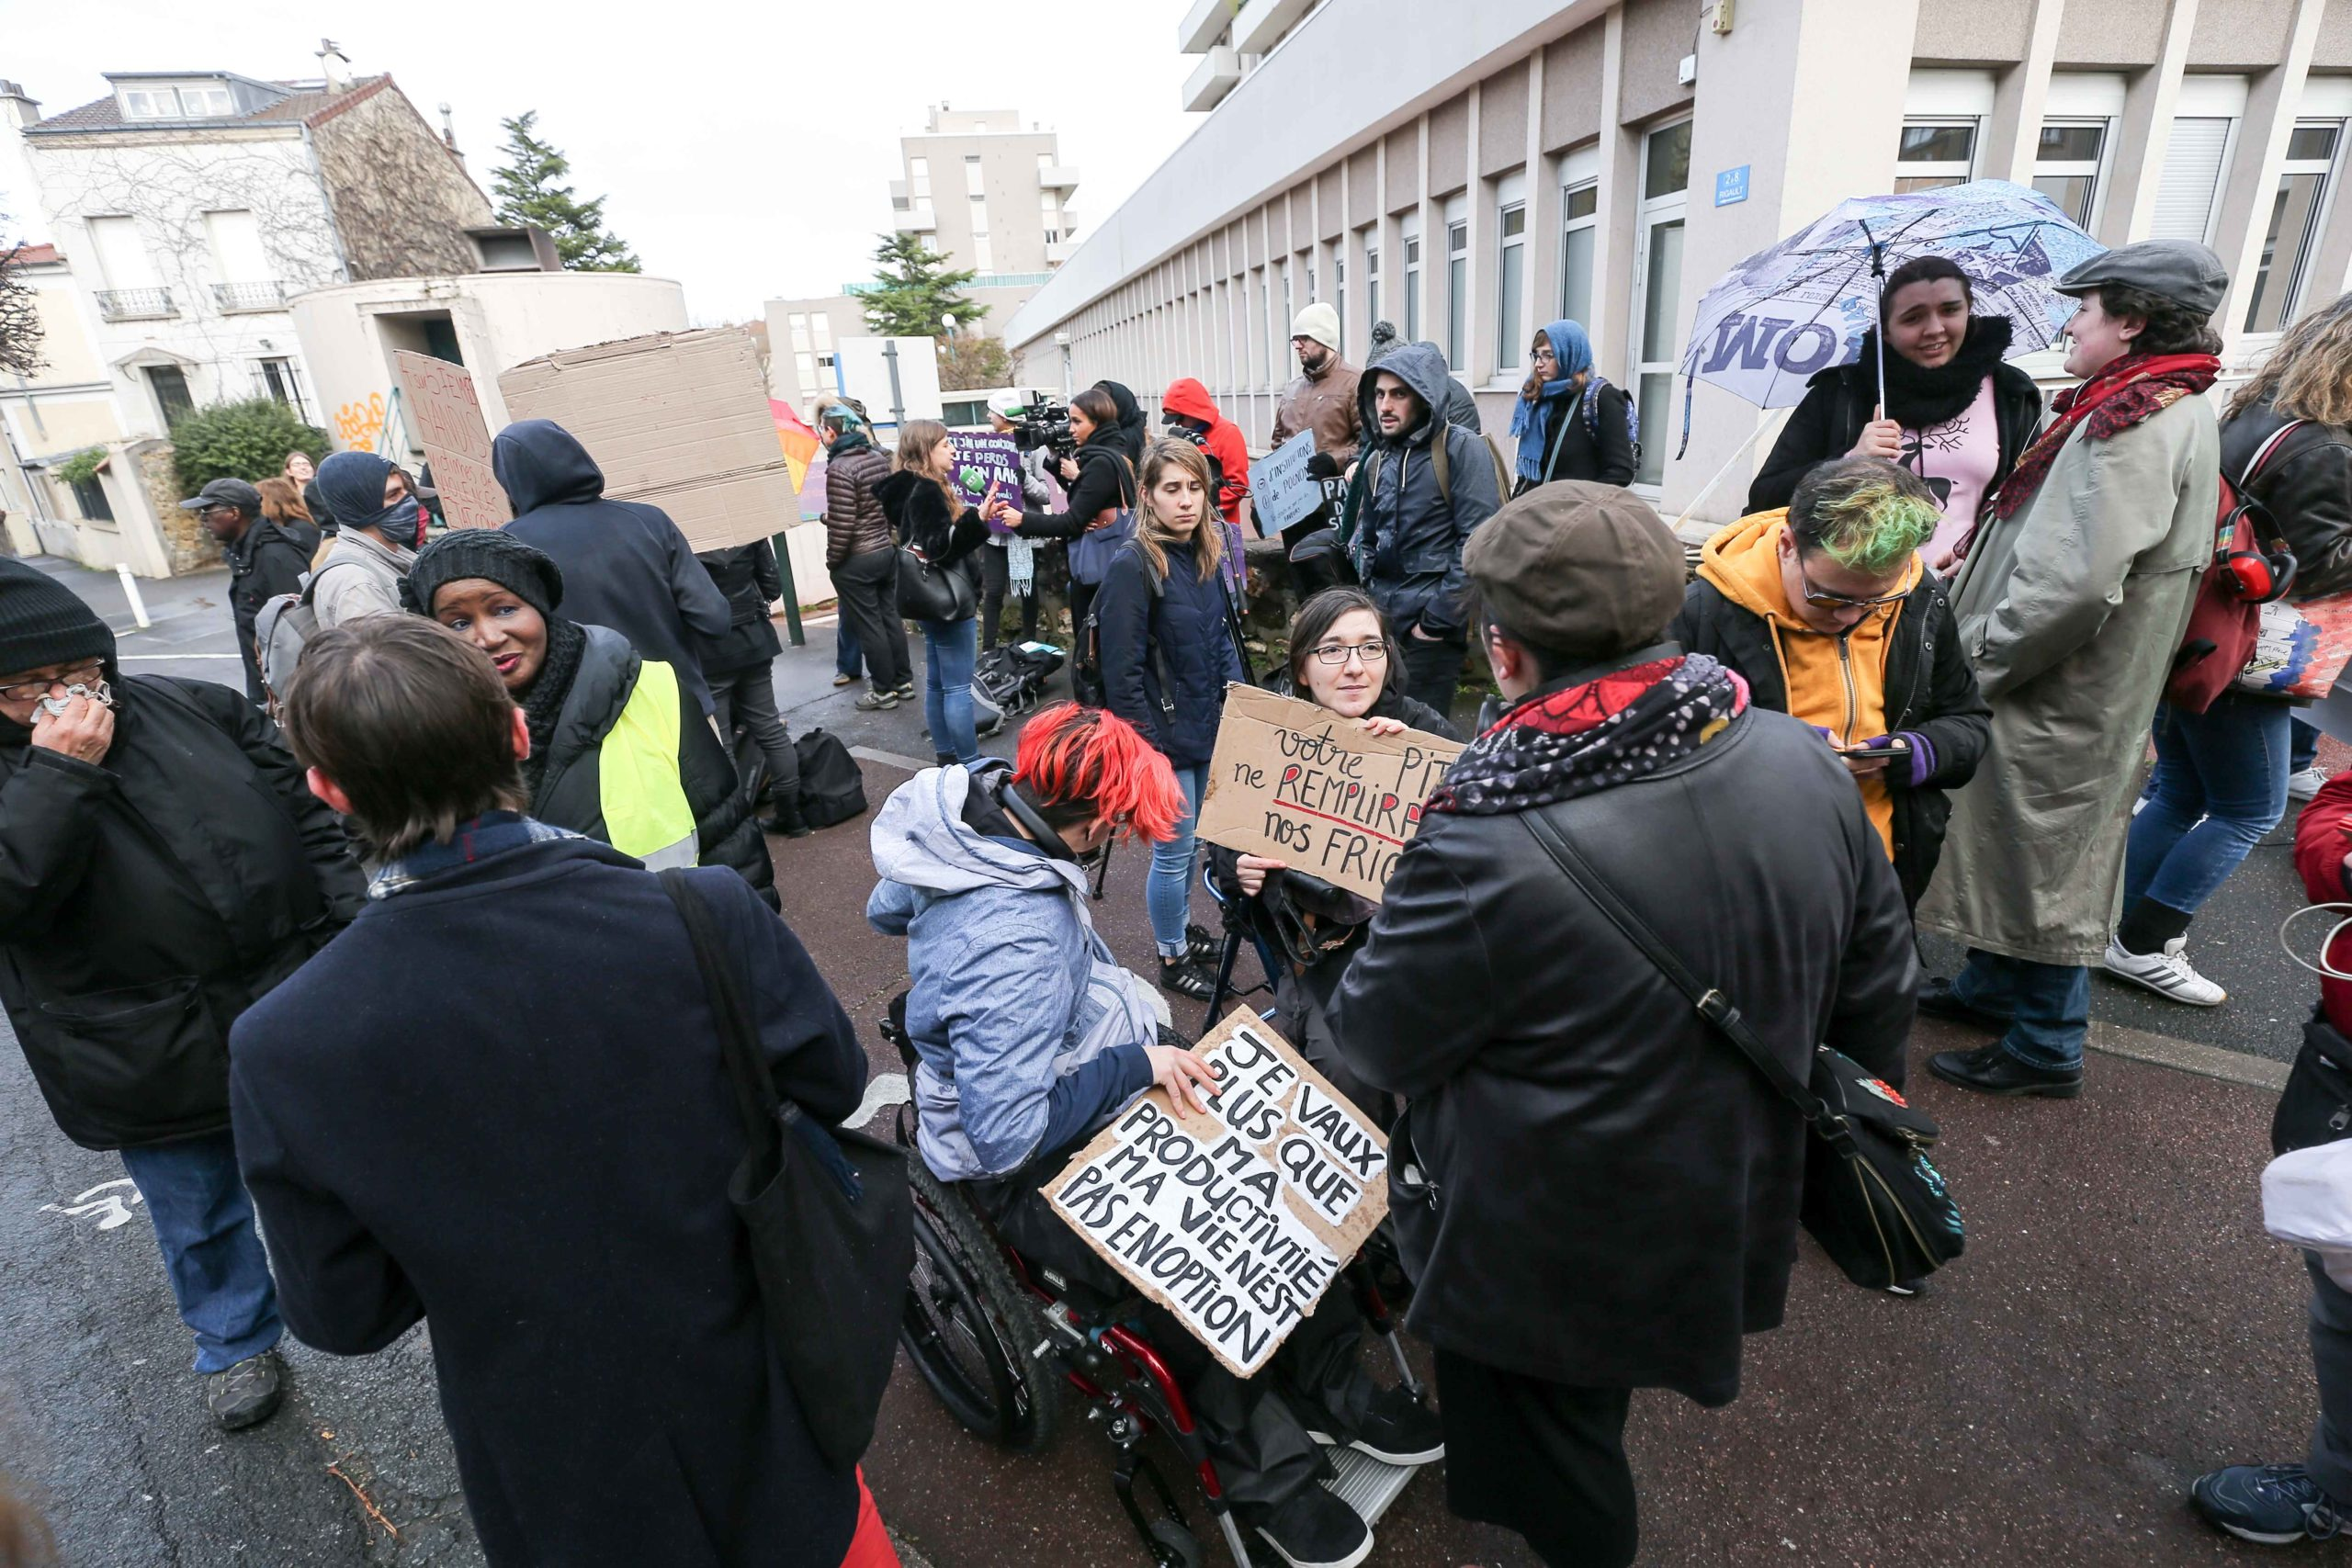 Protestors demonstrate for a greater inclusion of people with disabilies in front of the Departemental Center for Disabled Persons (Maison départementale des personnes handicapées MDPH) in Nanterre, in the inner suburbs of Paris, on February 11, 2020, th